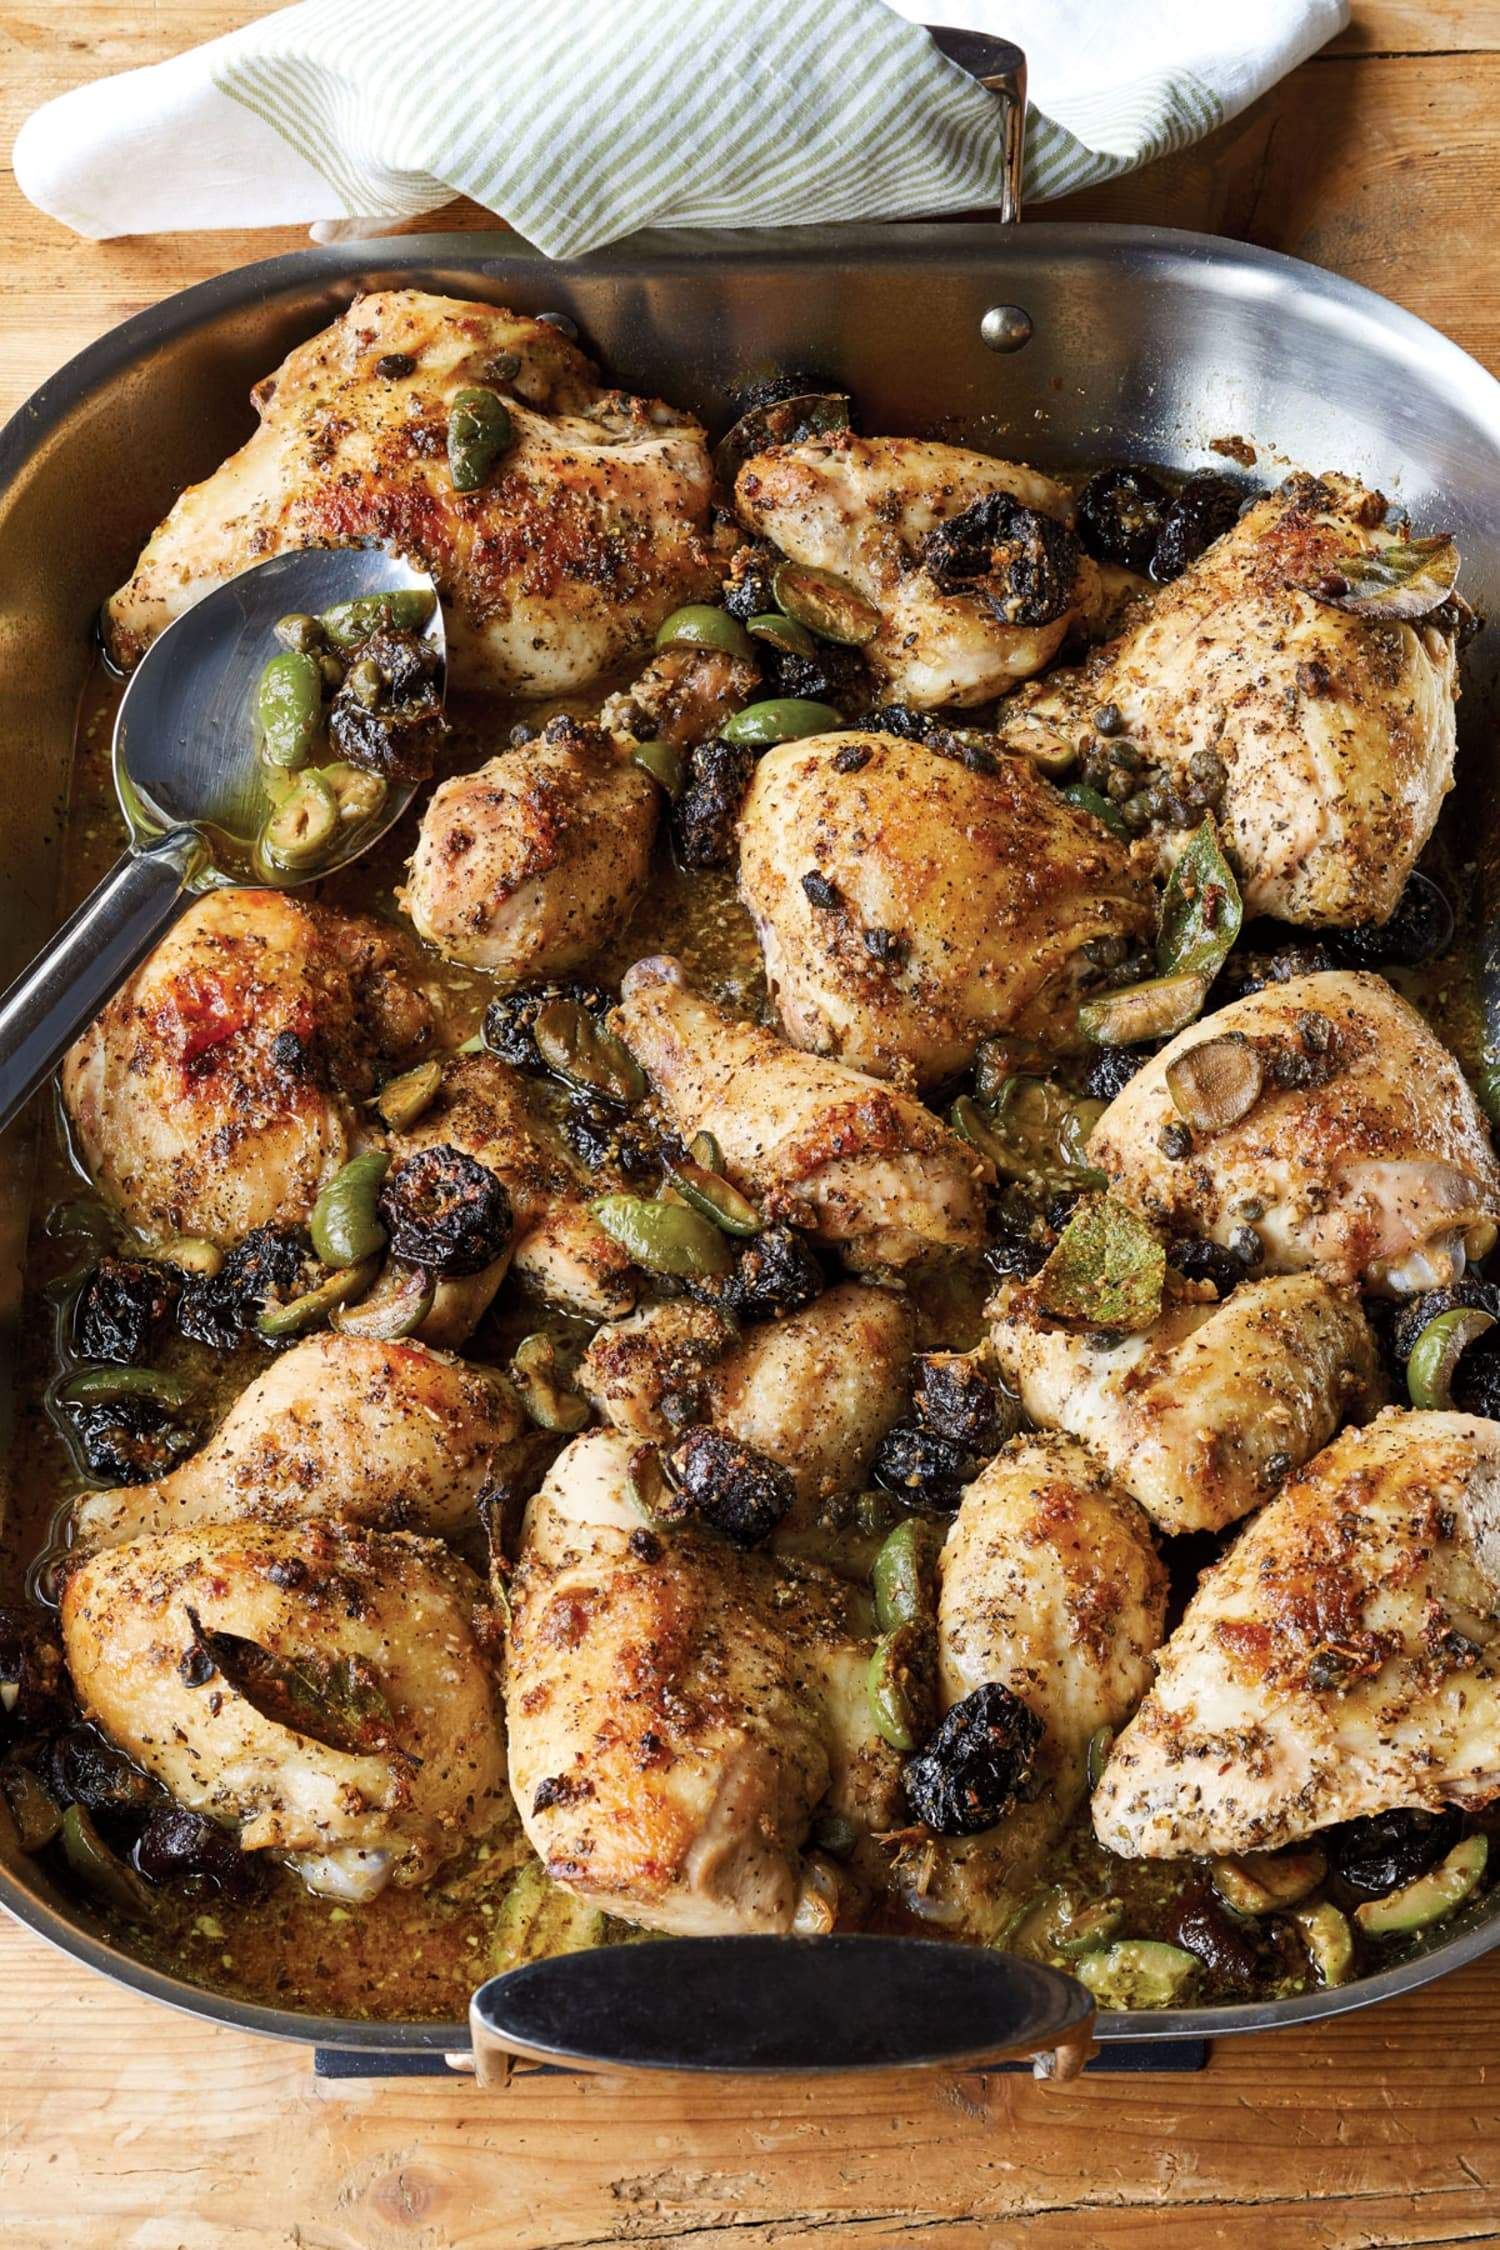 Chicken Marbella - Half or Whole Chicken